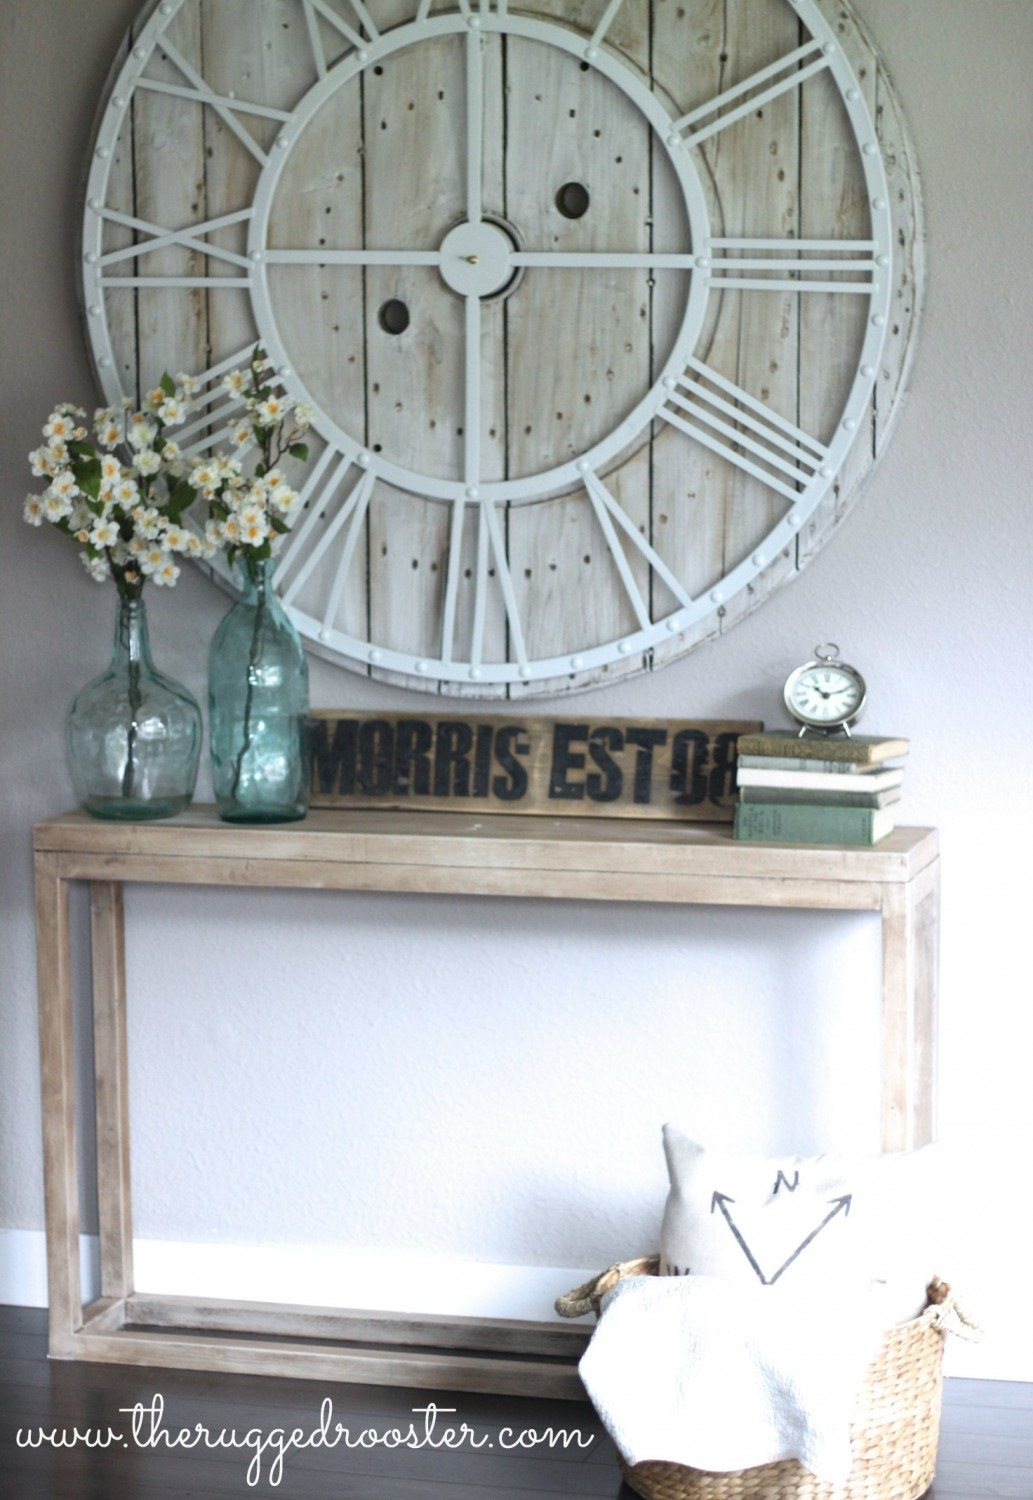 Make barnwood out of paint